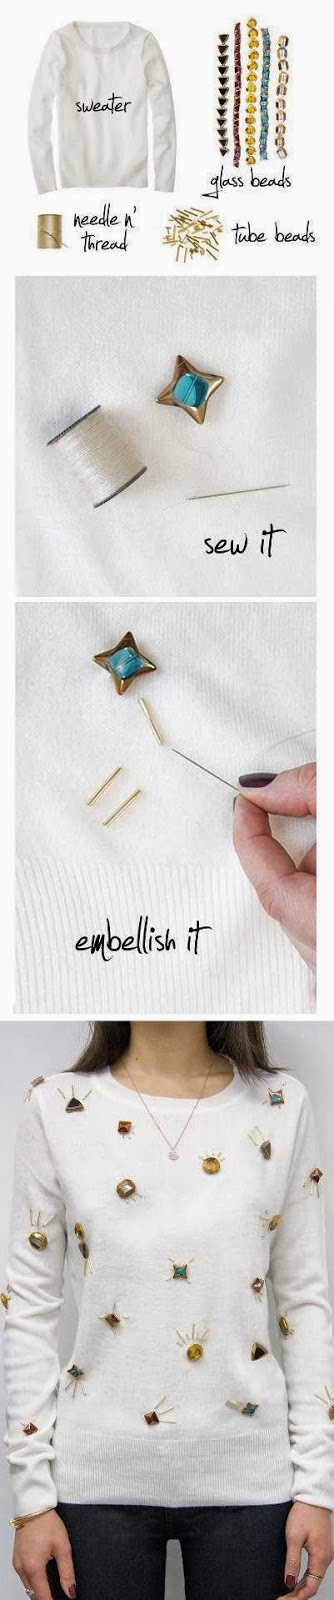 Make a Beautiful Embellished Sweater